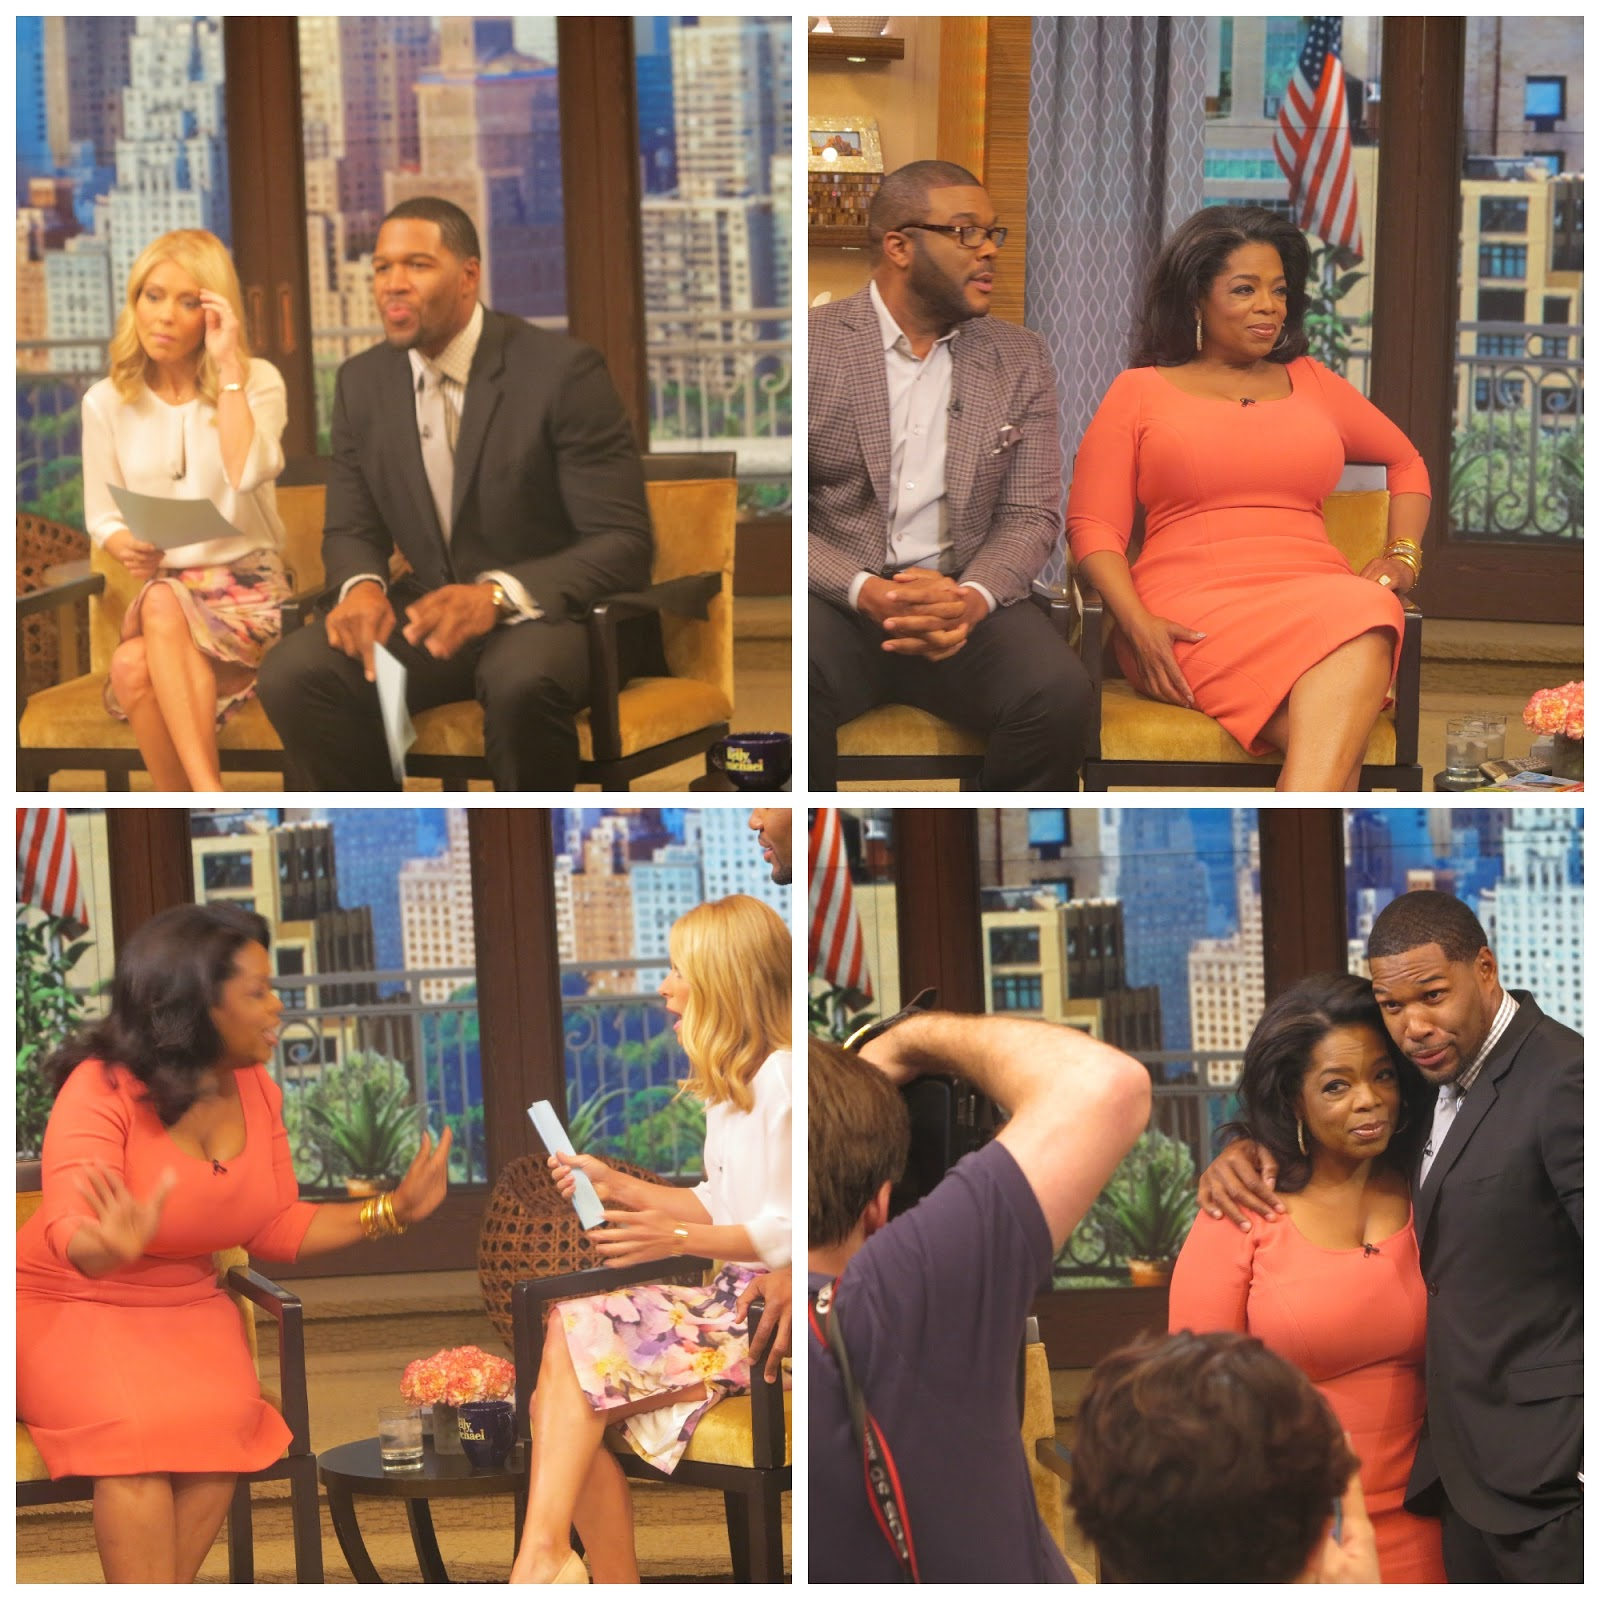 Live with kelly and michael strahan 1846 183 2592